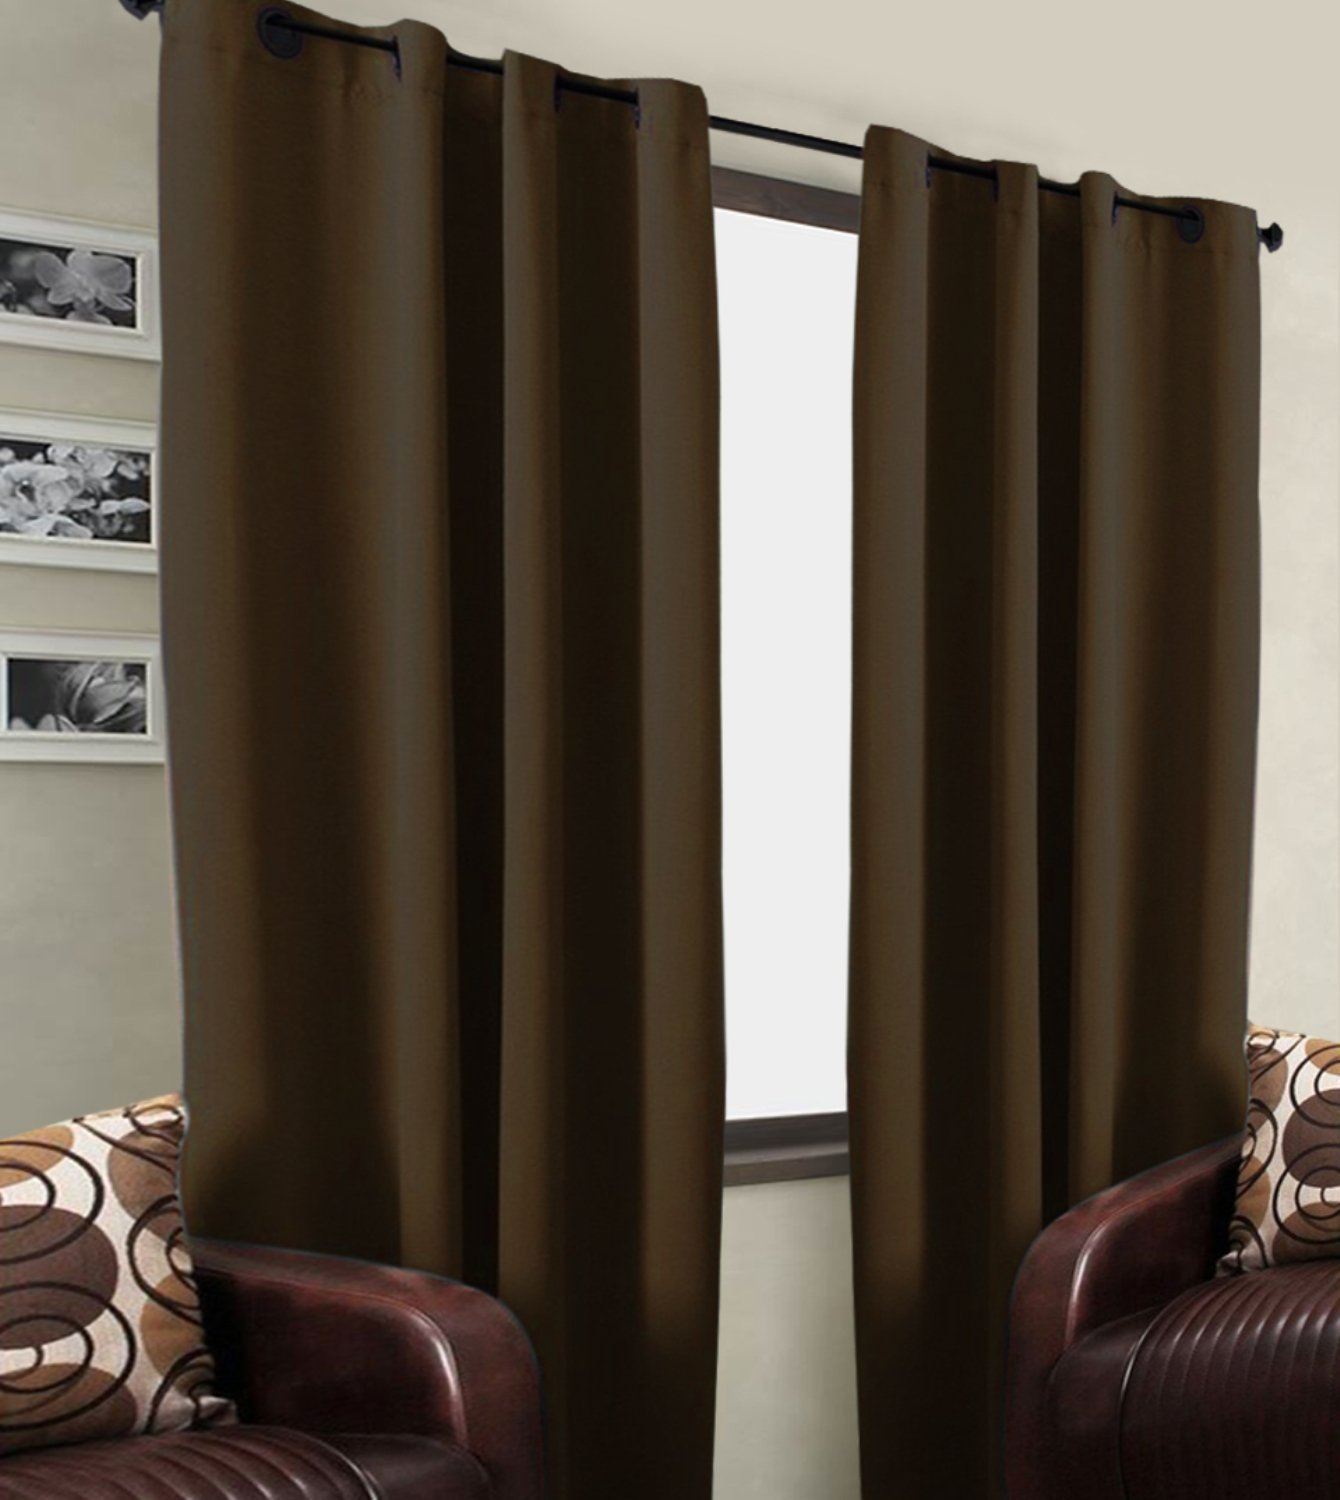 Kurtains2fly Blackout Curtain- 2-Panel Brown Color 4.5 x 9 ft (Brown, 4 x 6)